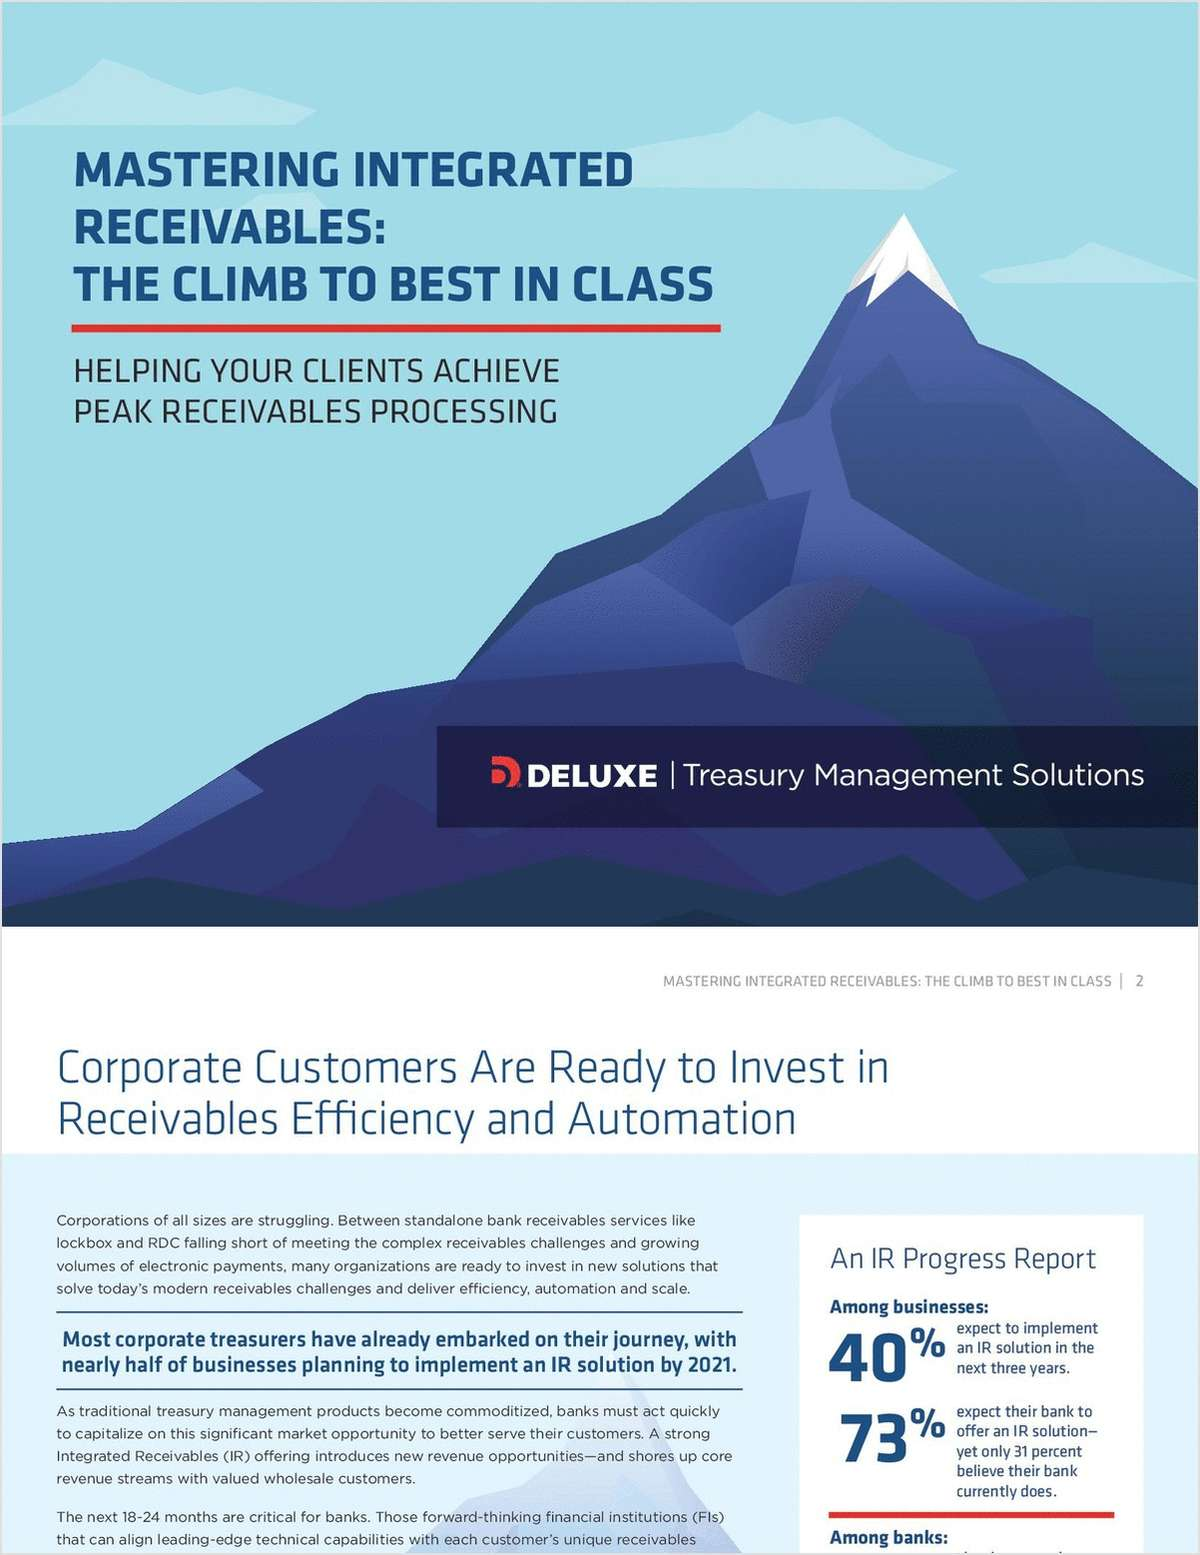 Mastering Integrated Receivables: The Climb to Best in Class